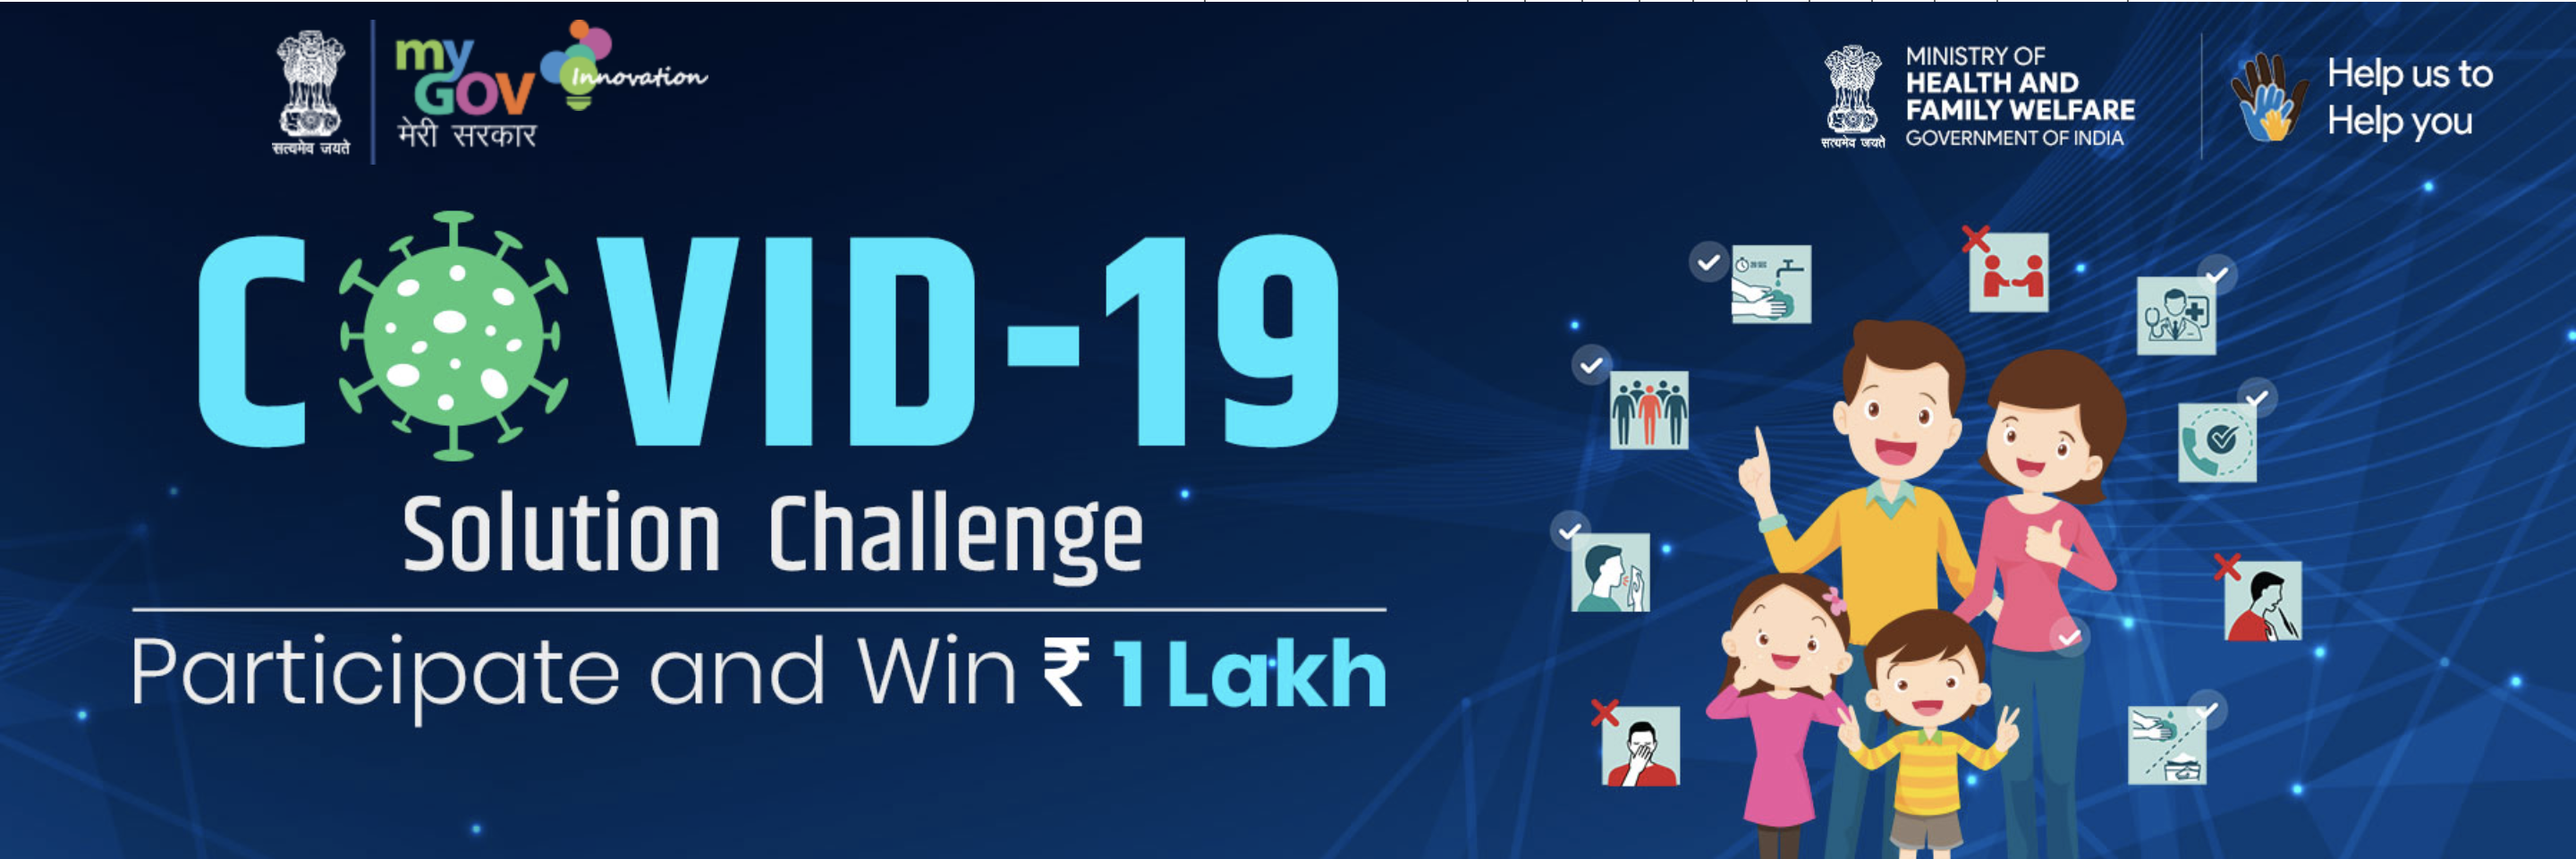 Seeking startups and individuals to participate in the COVID 19 Solution Challenge by the Government of India